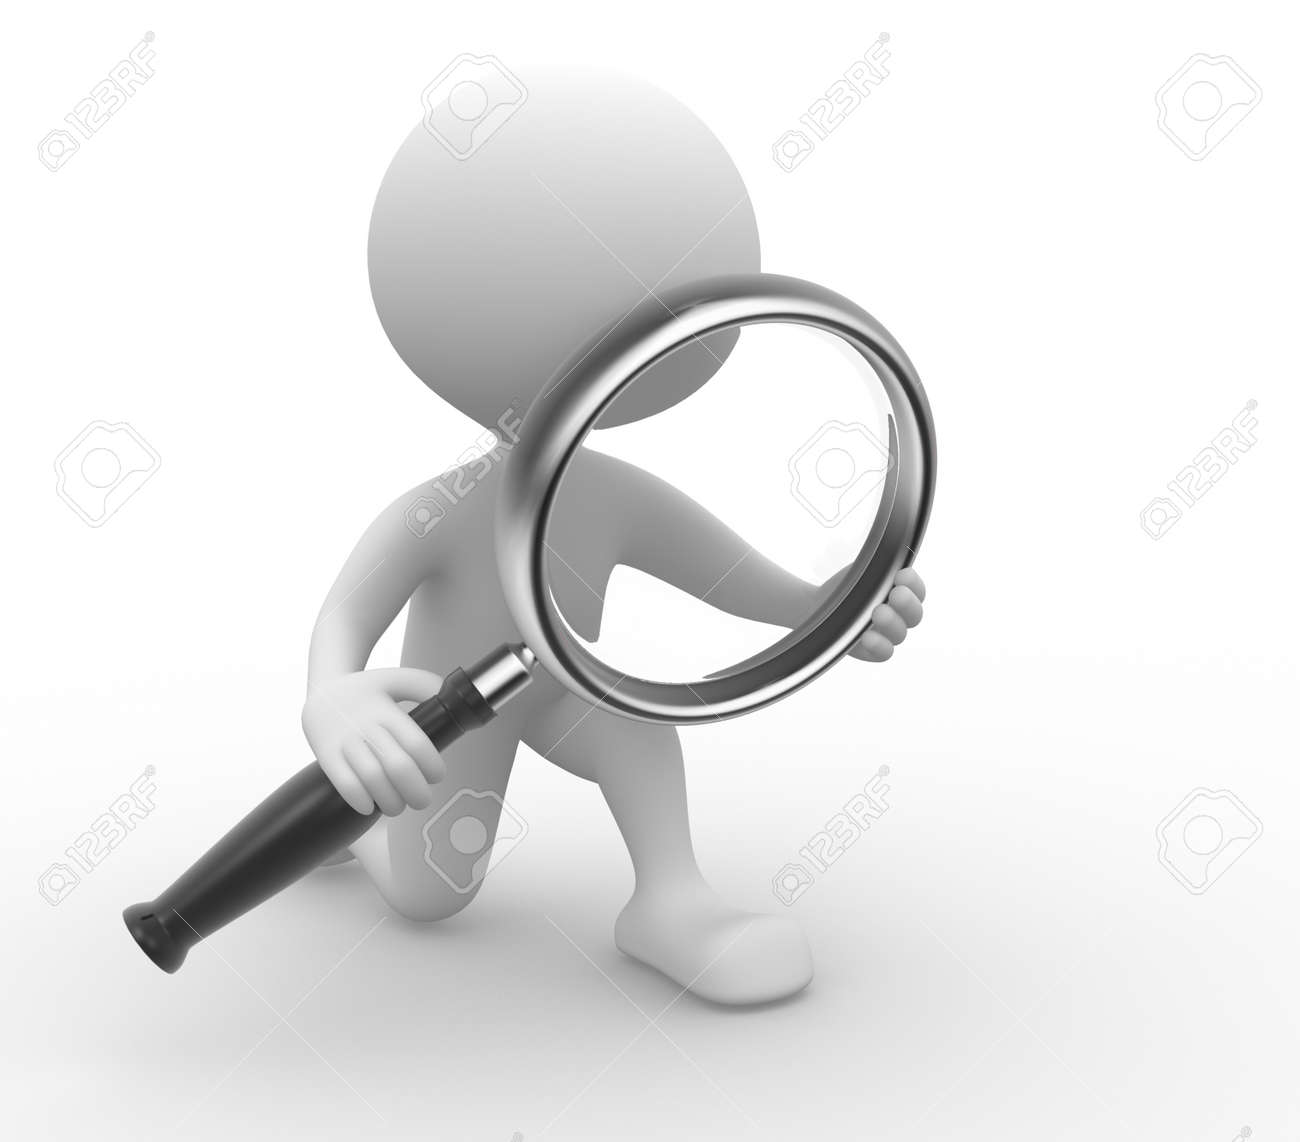 3d people - man, person with a magnifying glass Stock Photo - 21358971